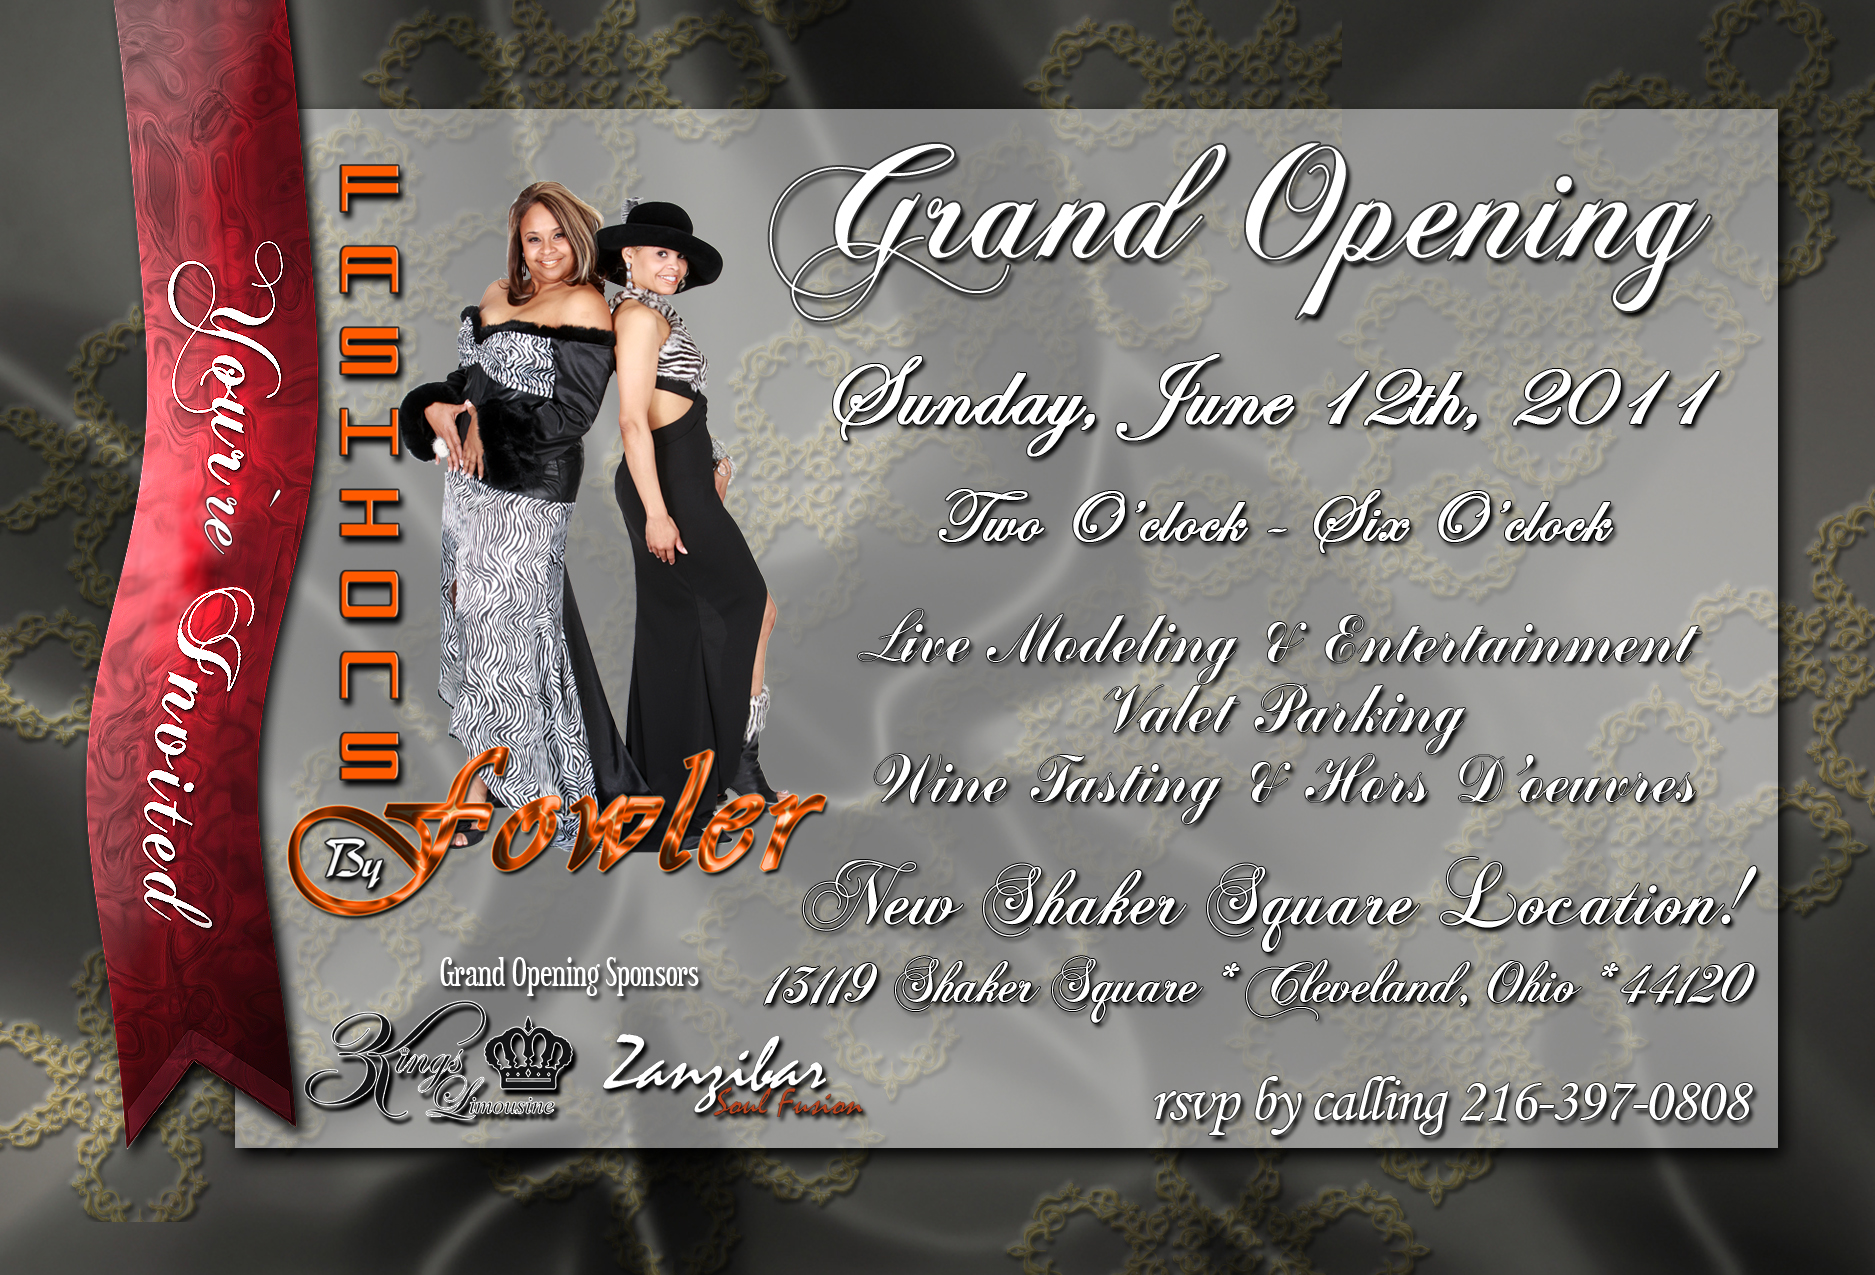 Fashions by Fowler Grand Opening New Location